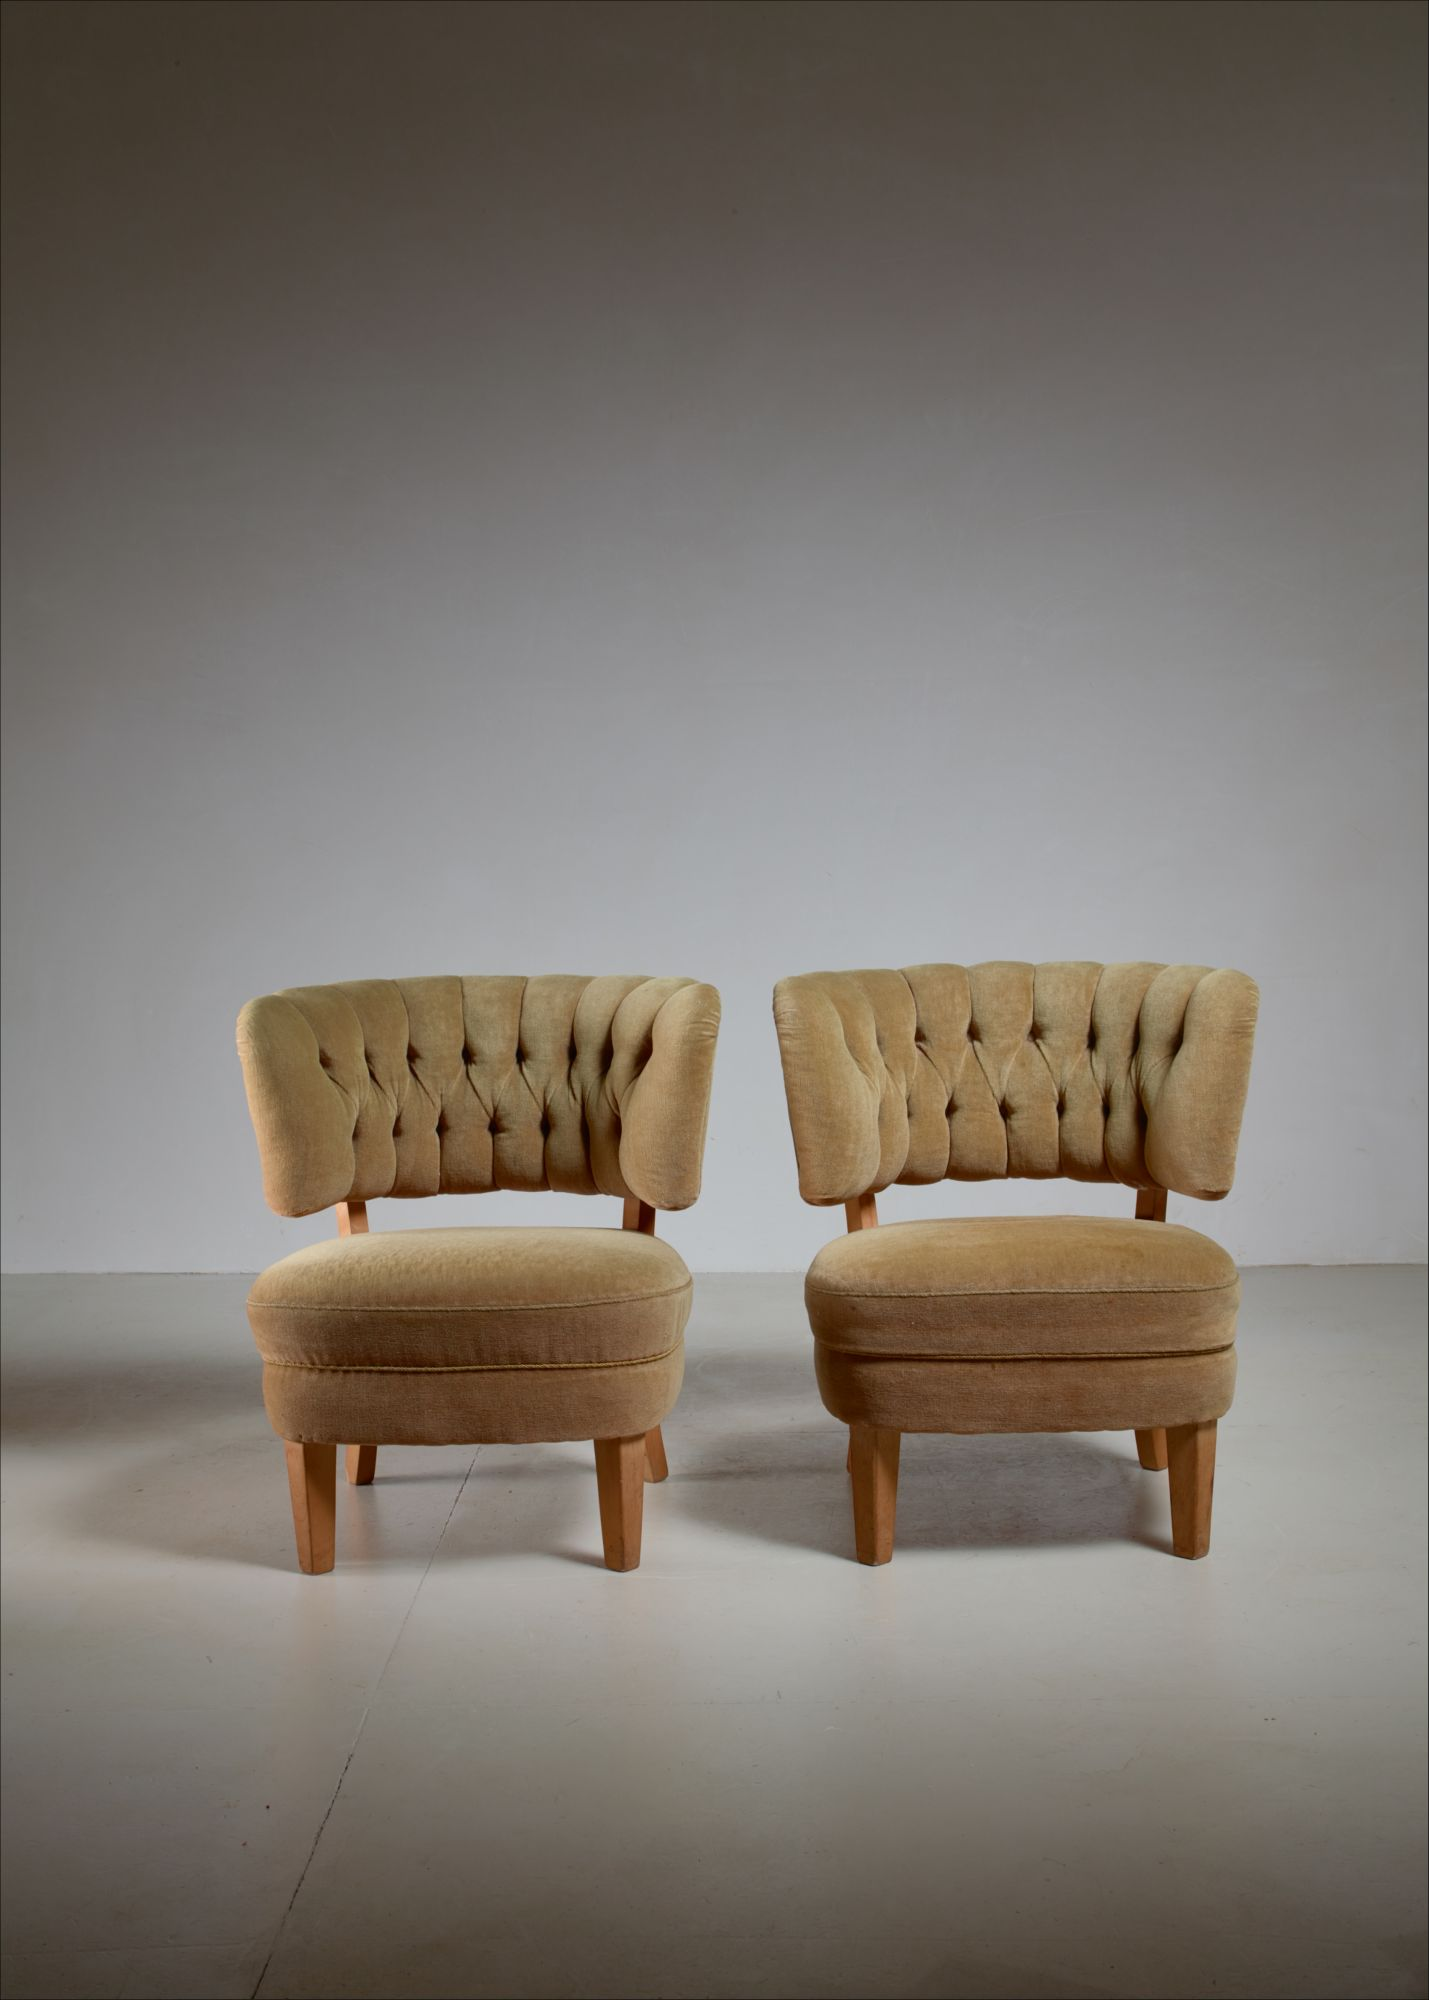 Pleasant Otto Schulz Pair Of Lounge Chairs By Jio Mobler Sweden 1940S Gmtry Best Dining Table And Chair Ideas Images Gmtryco